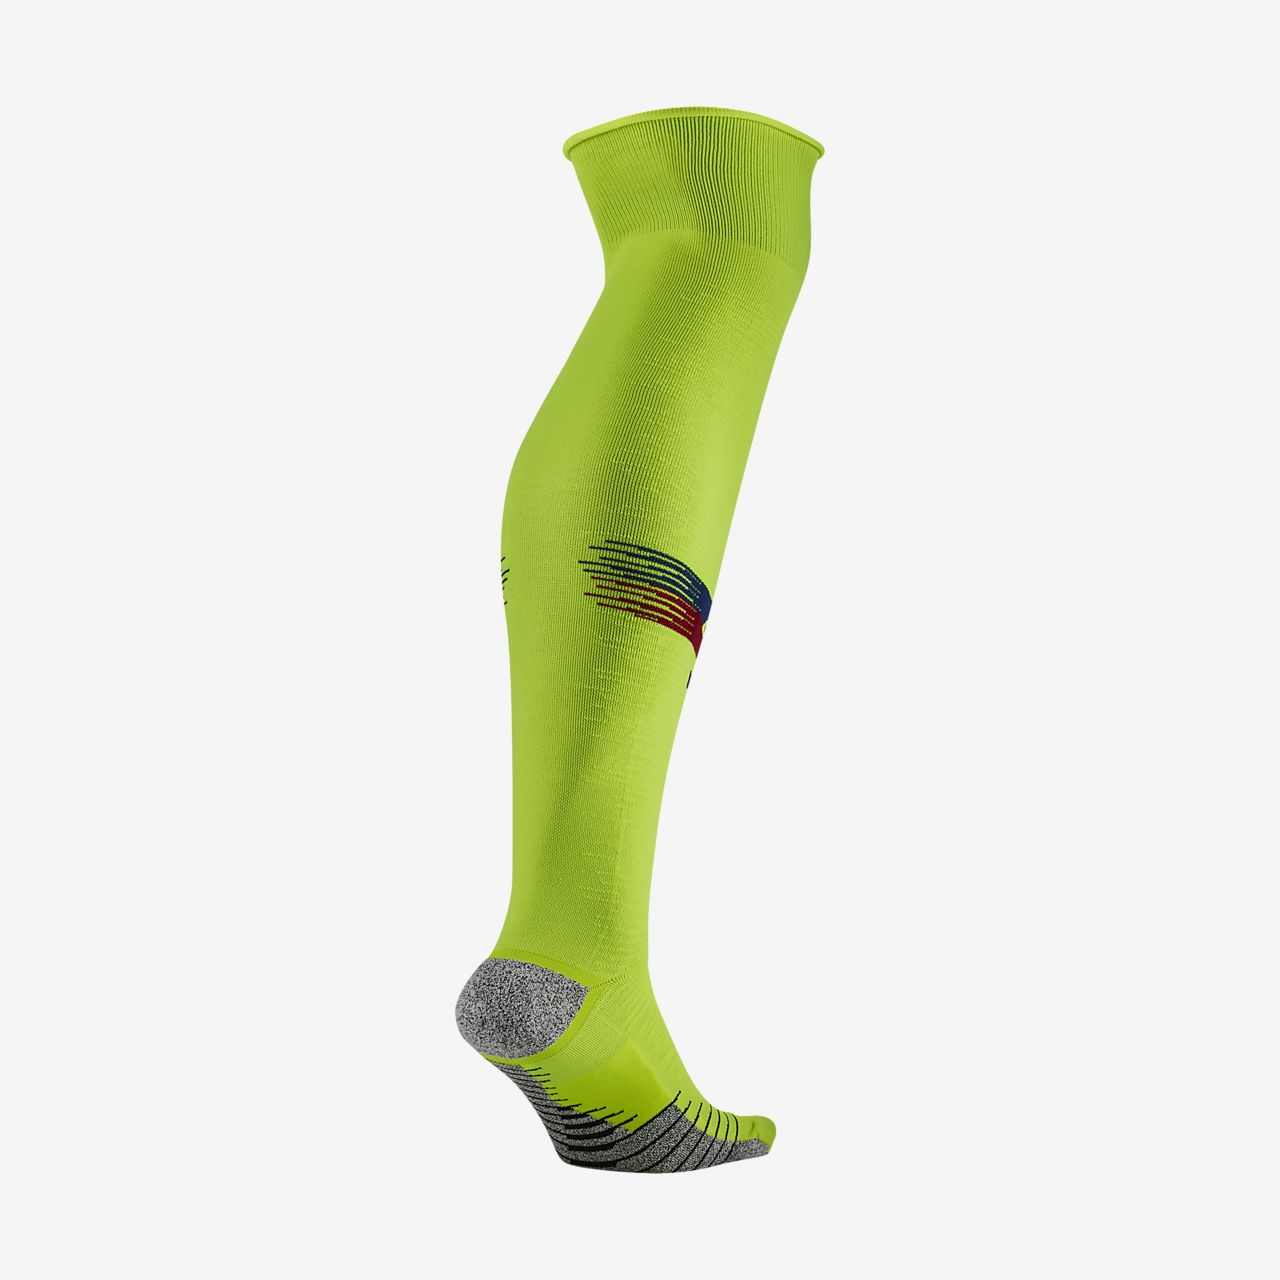 2018/19 FC Barcelona NikeGrip Match Away Over-the-Calf Football Socks